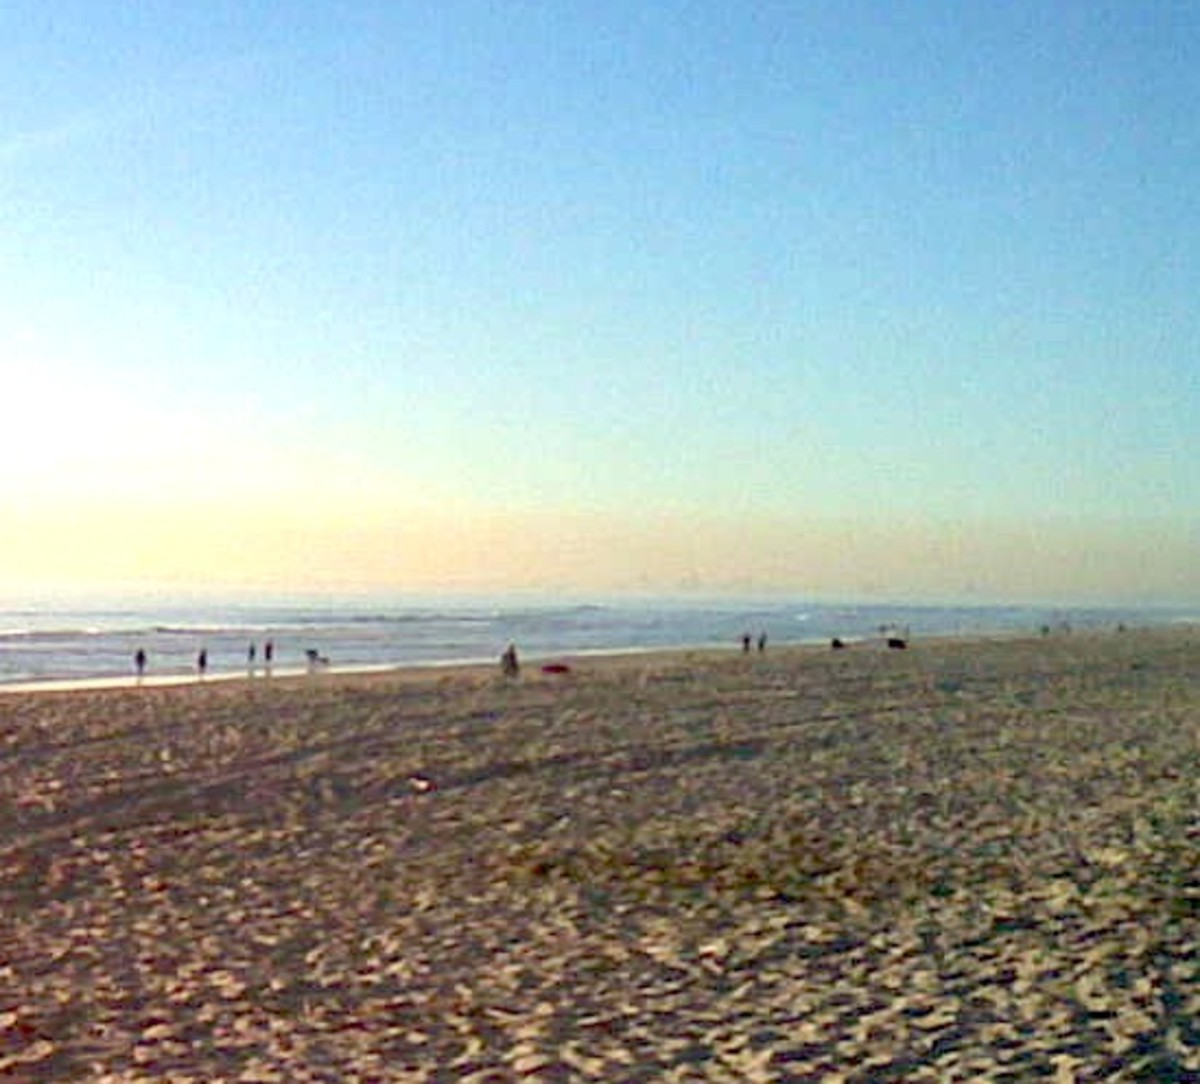 Beach in Orange County, California / E. A. Wright 2008